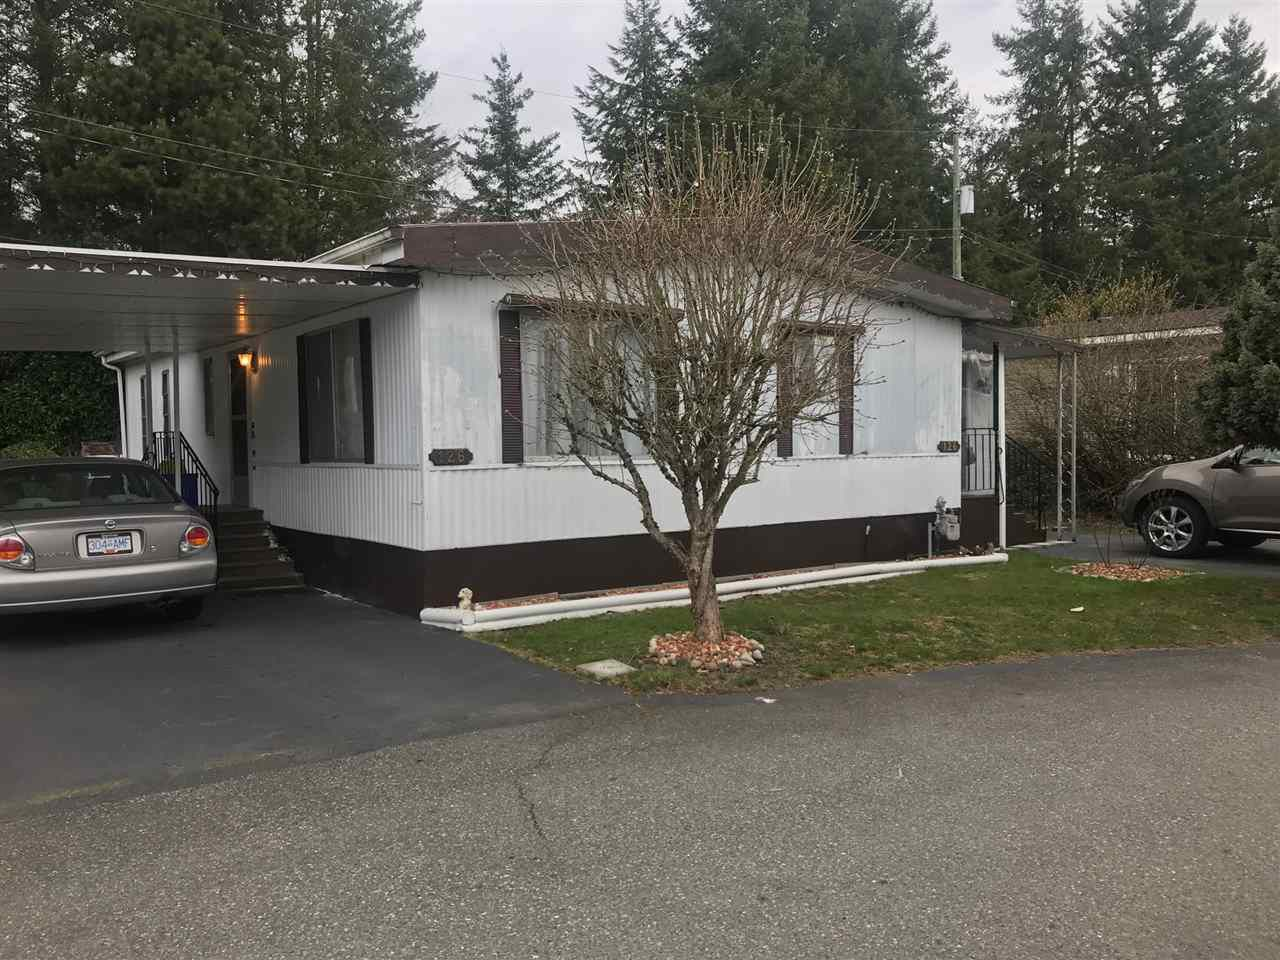 """Main Photo: 126 3031 200 Street in Langley: Brookswood Langley Manufactured Home for sale in """"Cedar Creek Estates"""" : MLS®# R2247153"""